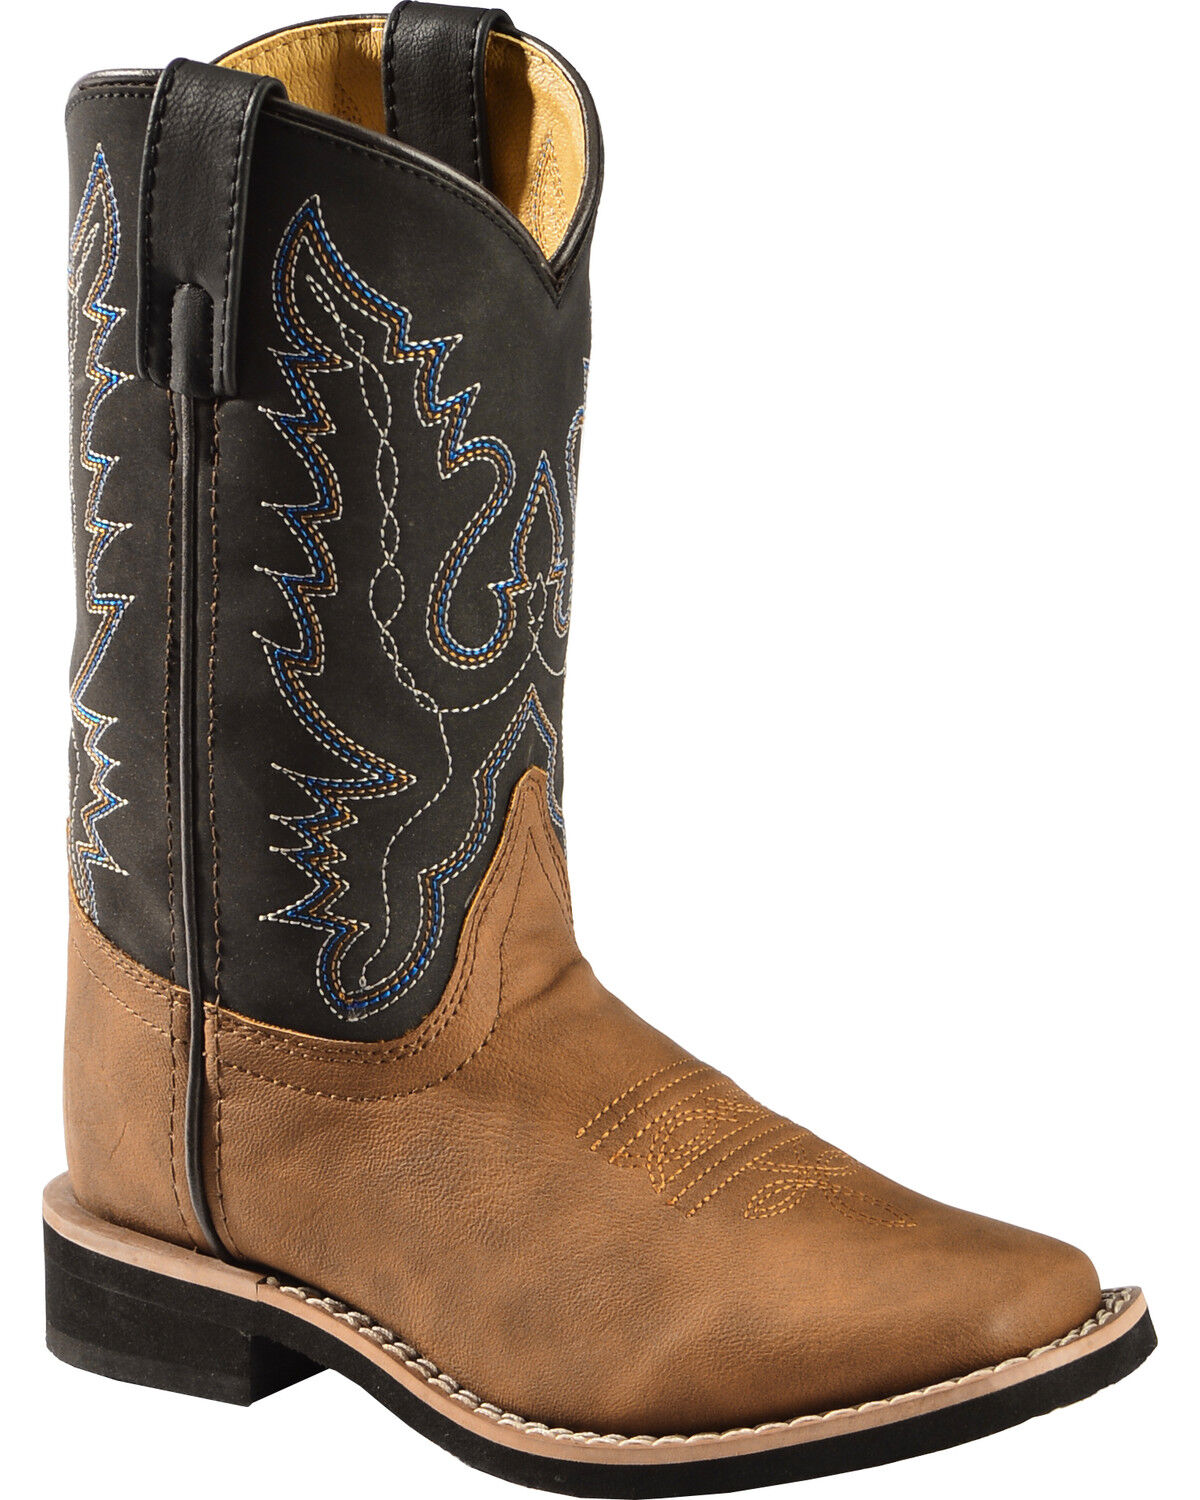 Kids' Western Boots & Shoes | Boot Barn